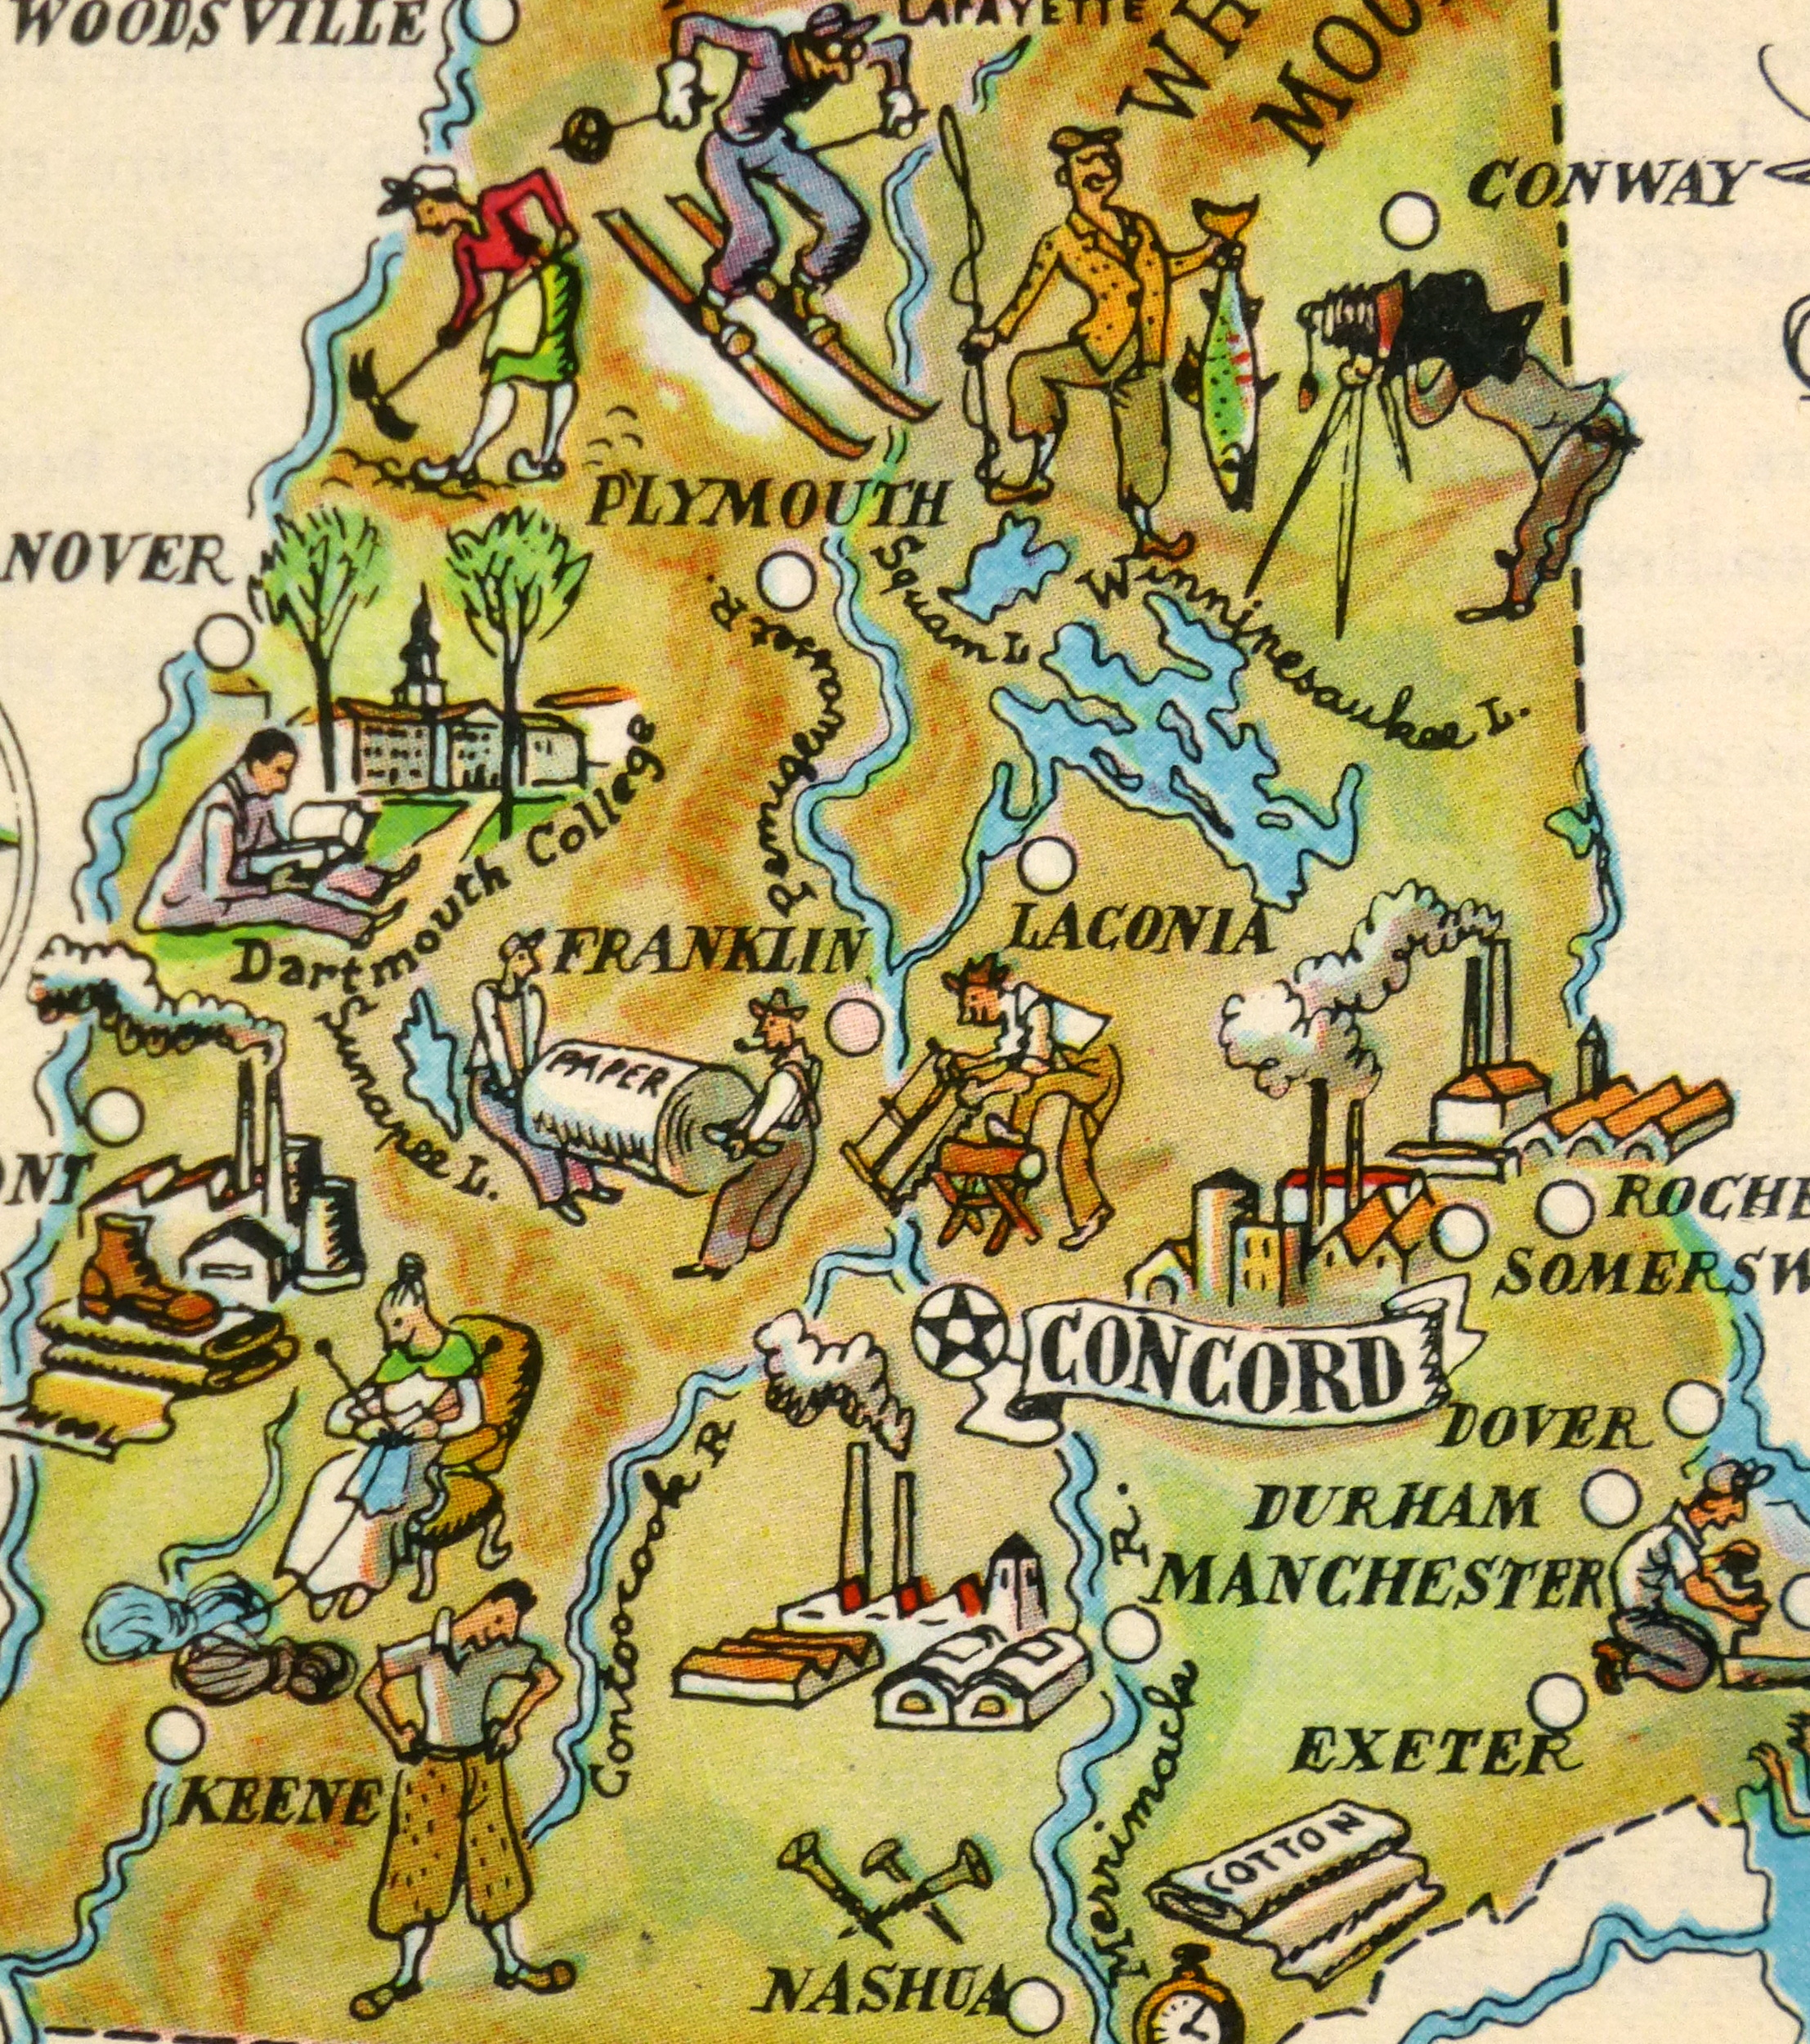 New Hampshire Pictorial Map, 1946-detail-6233K